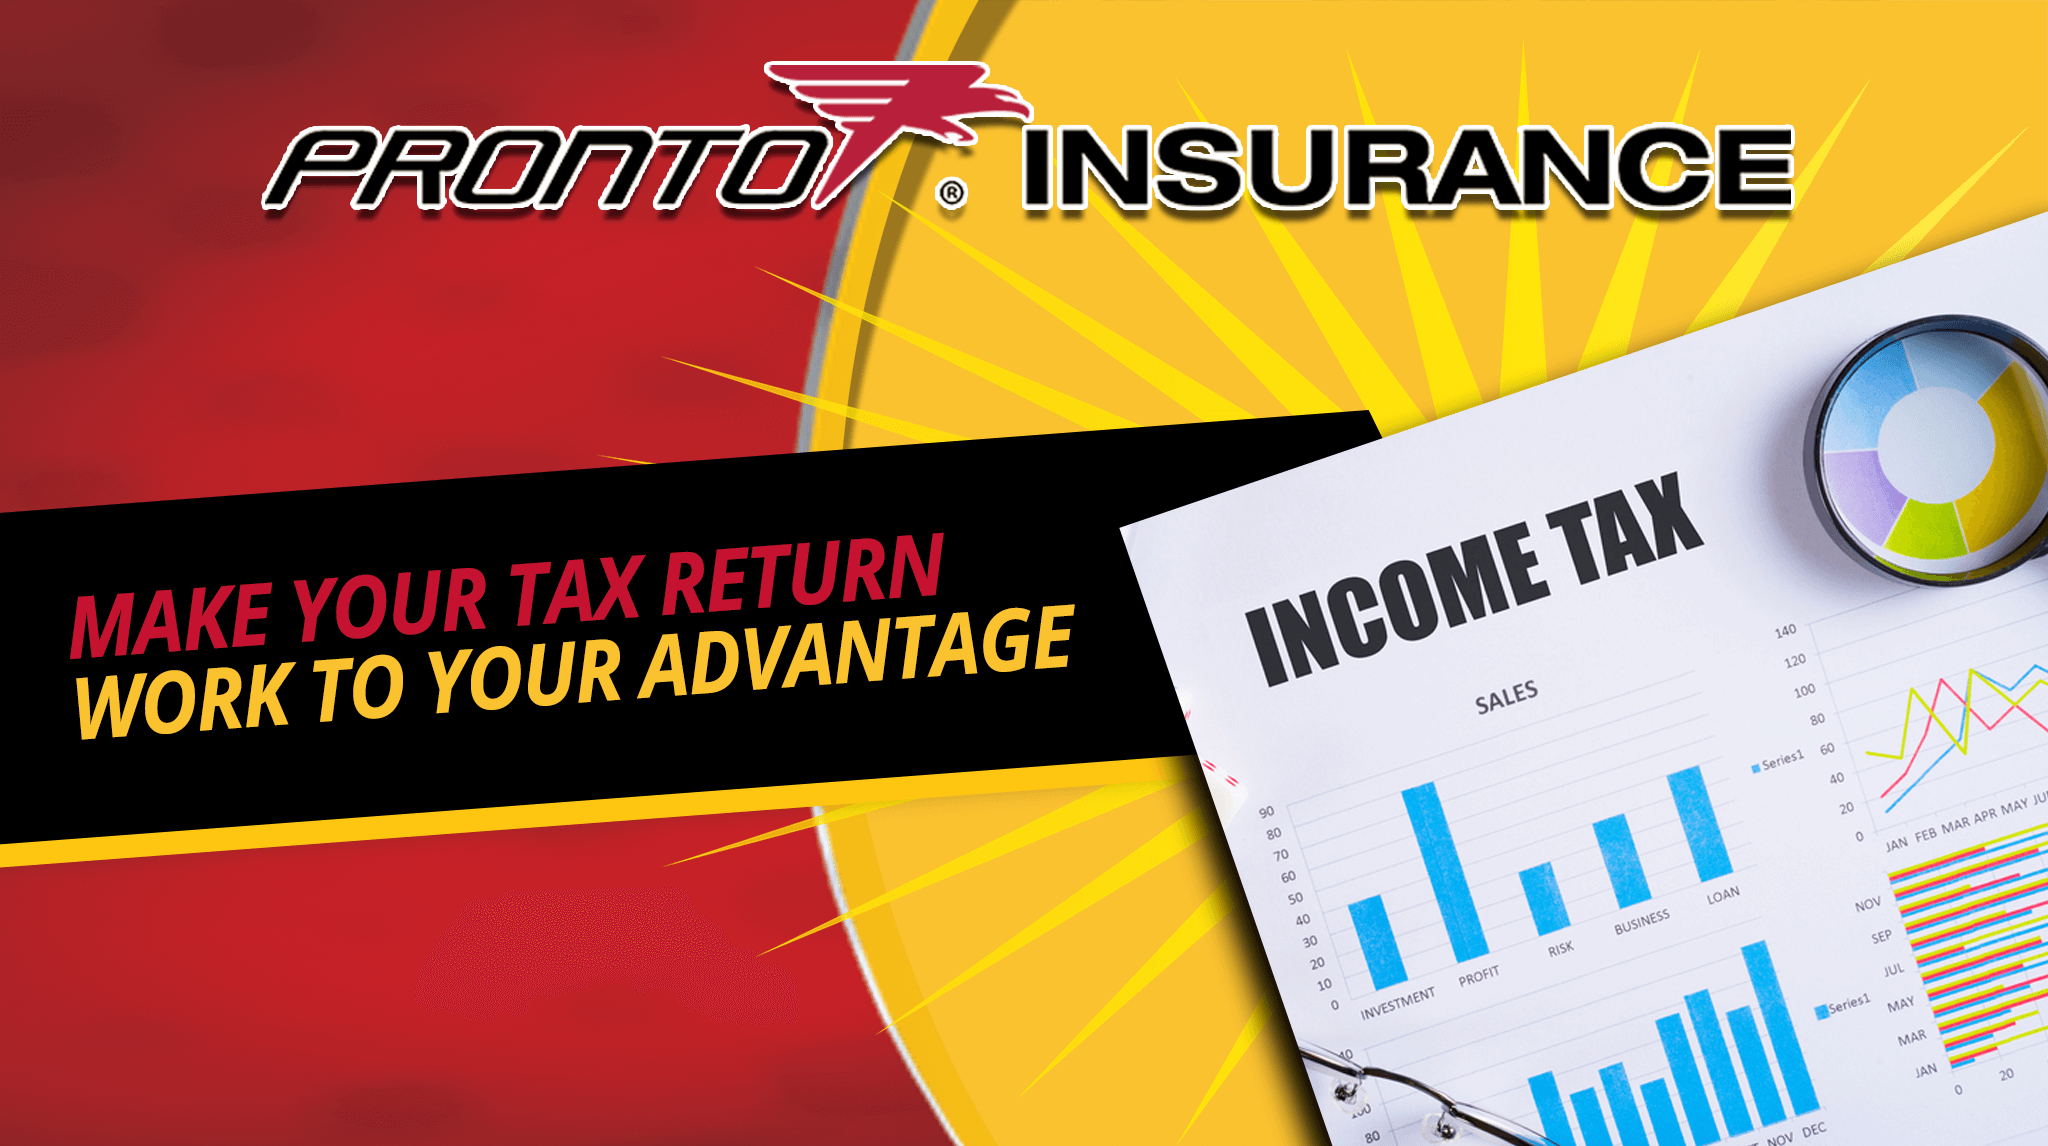 Make Your Tax Return Work to Your Advantage